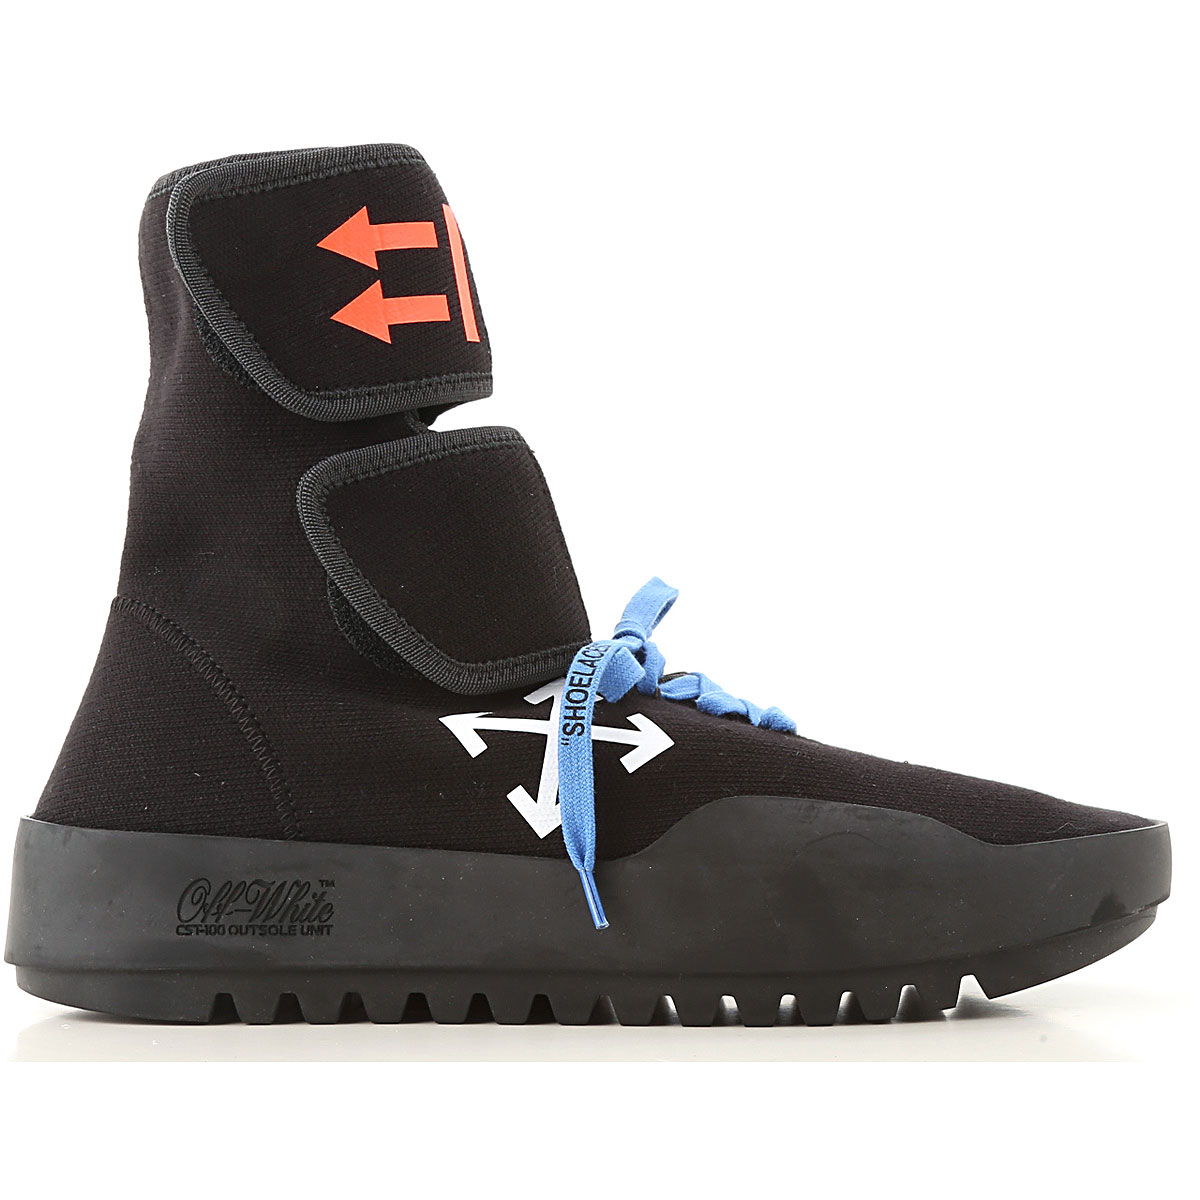 Mens Shoes Off White Virgil Abloh Style Code Omia108f 18b8301 1001